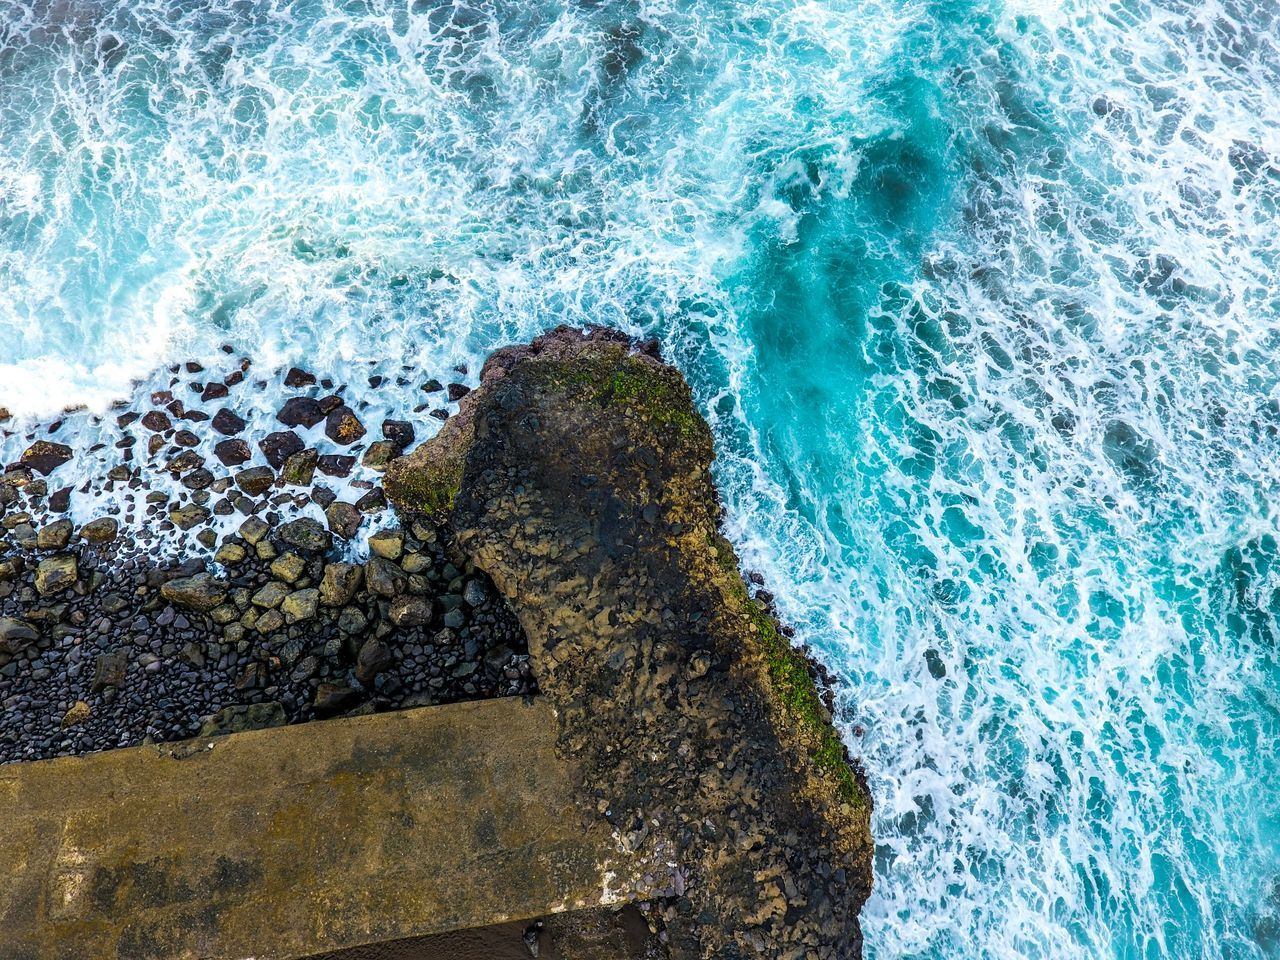 Our story, our Island Water Dronephotography Drone  Canary Islands